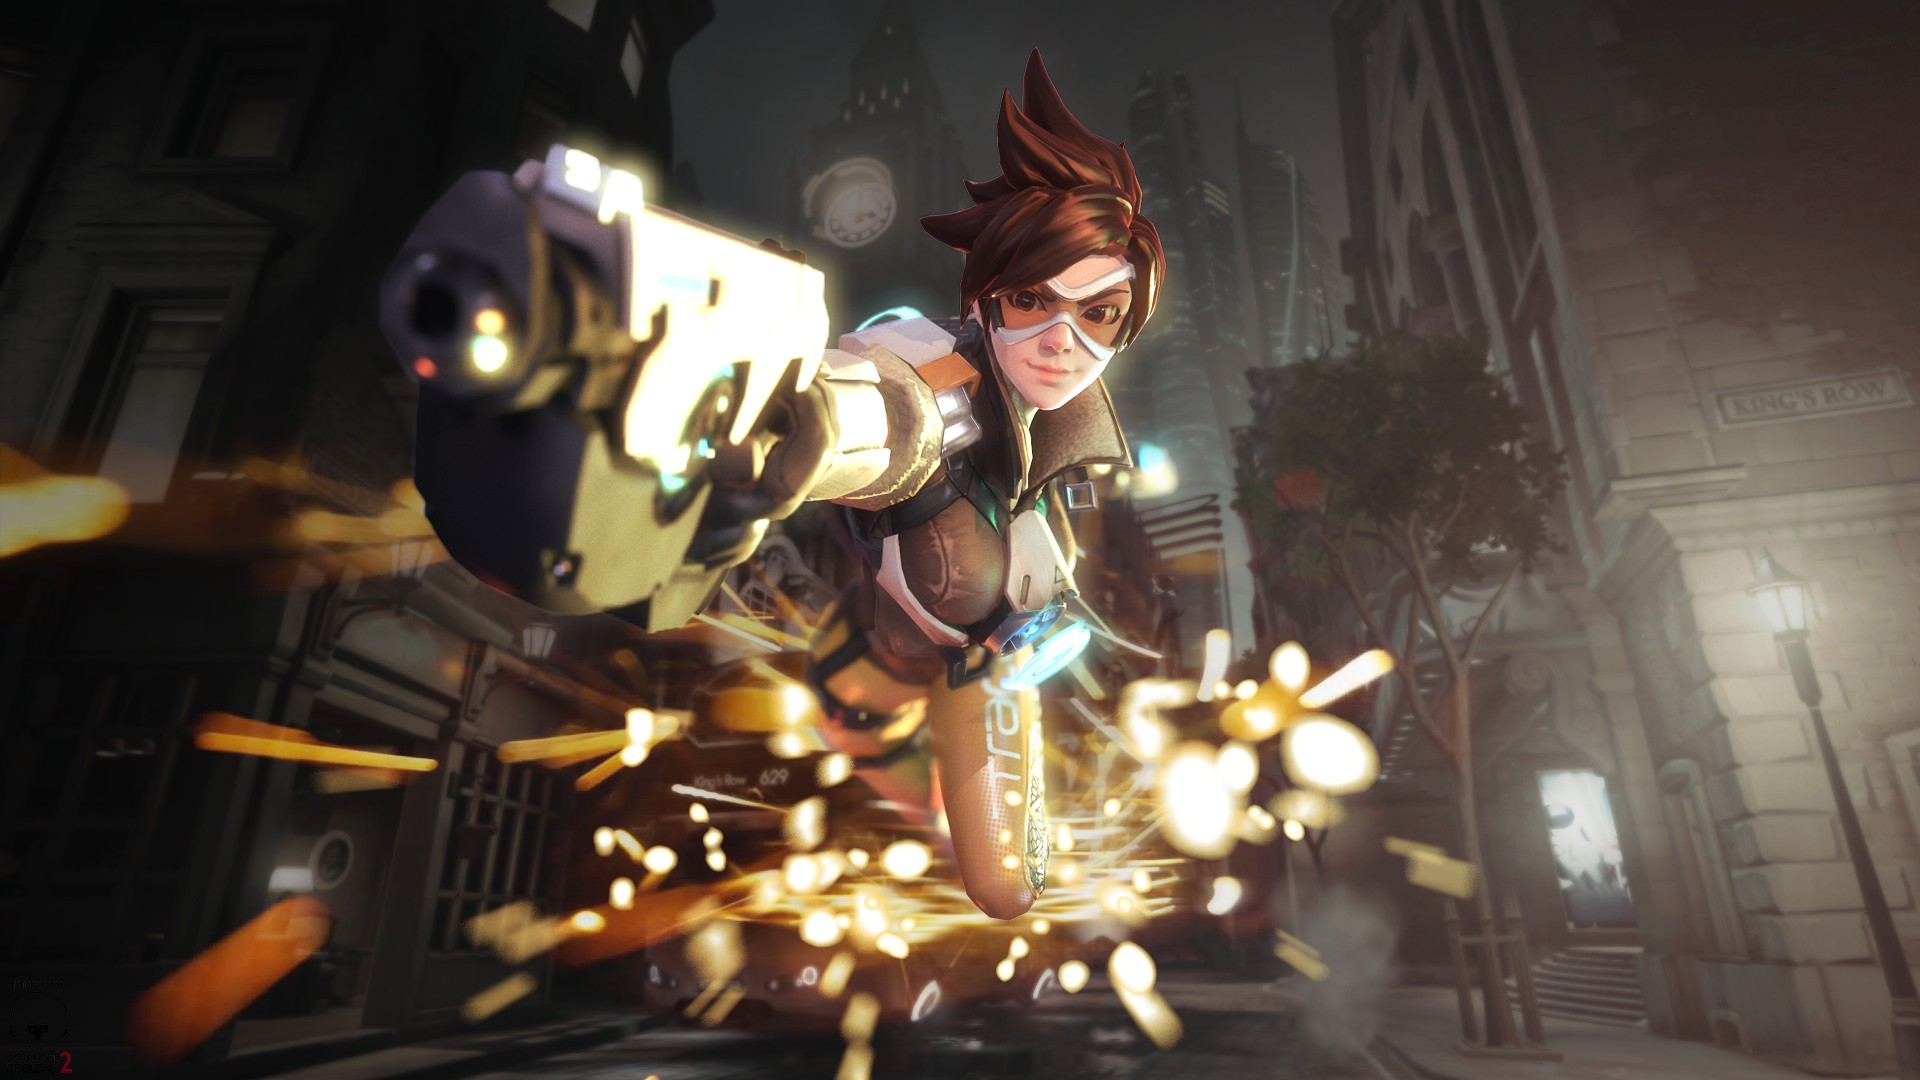 Cute Apple Watch Wallpaper Tracer Overwatch Hd Hd Games 4k Wallpapers Images